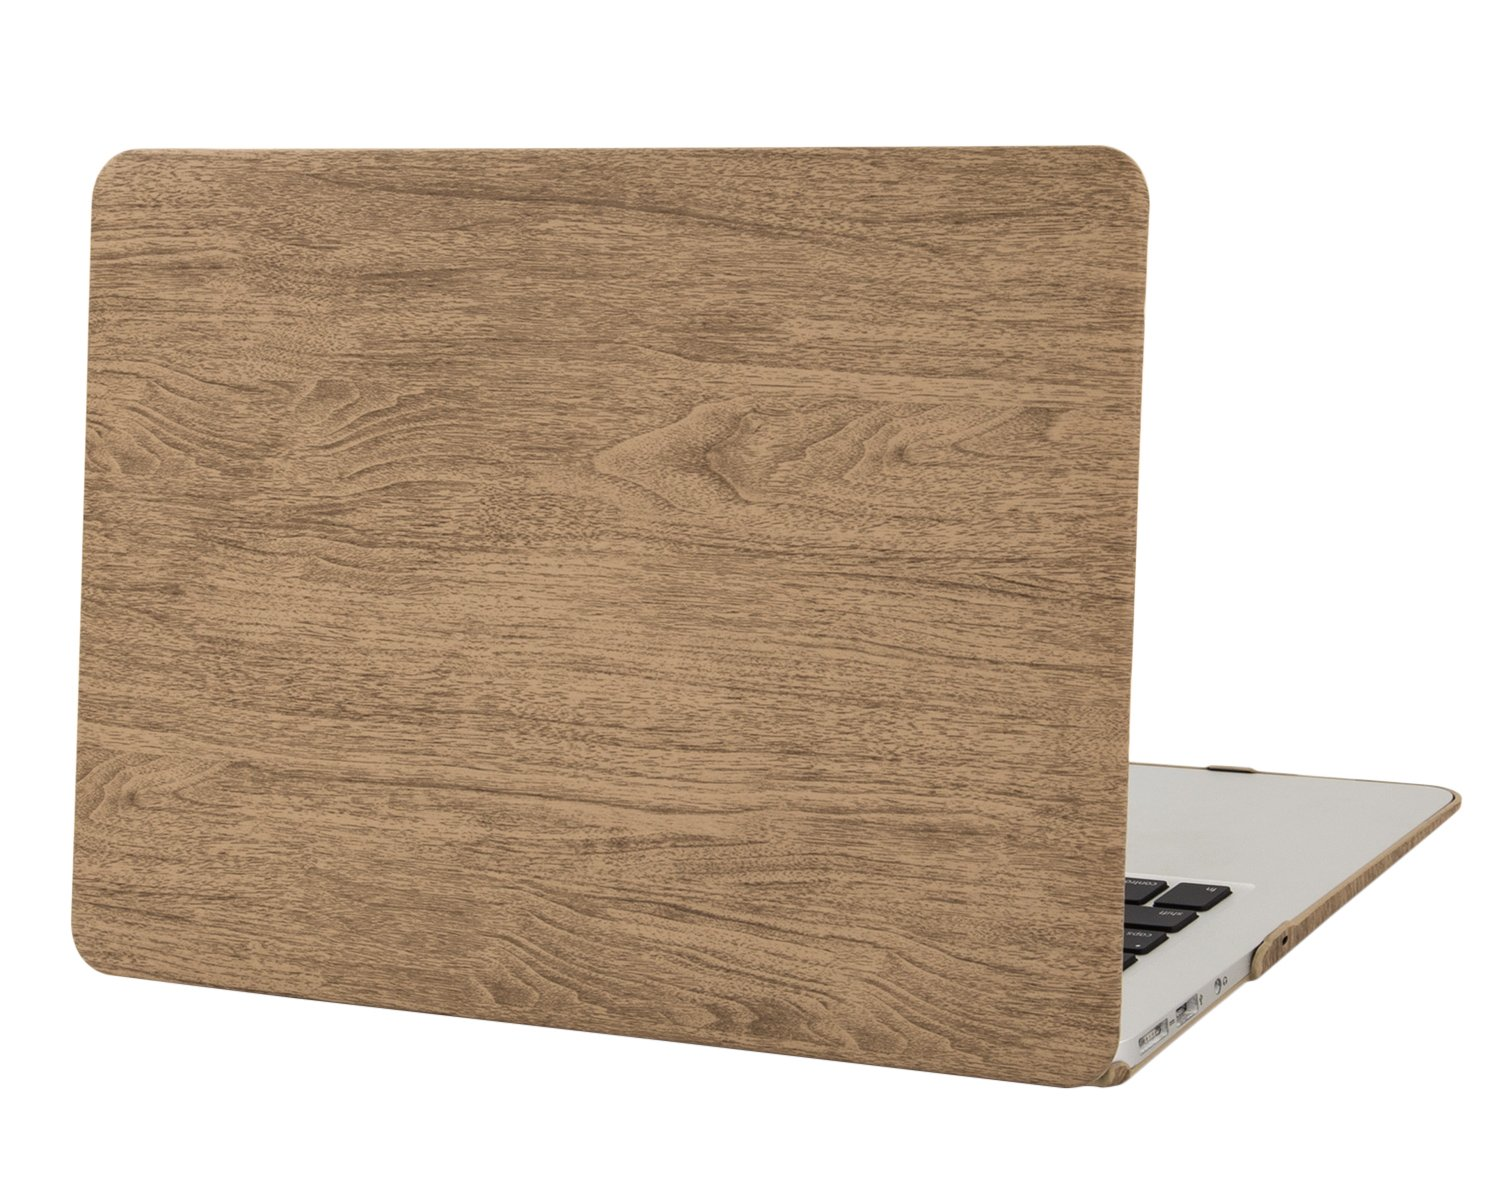 Mosiso Wood Grain Texture PU Leather Coated Hard Shell Case Cover for MacBook Air 13 Inch (Models: A1369 and A1466), Light Brown 13MBA_R-PU-Silk-Wood-Grain